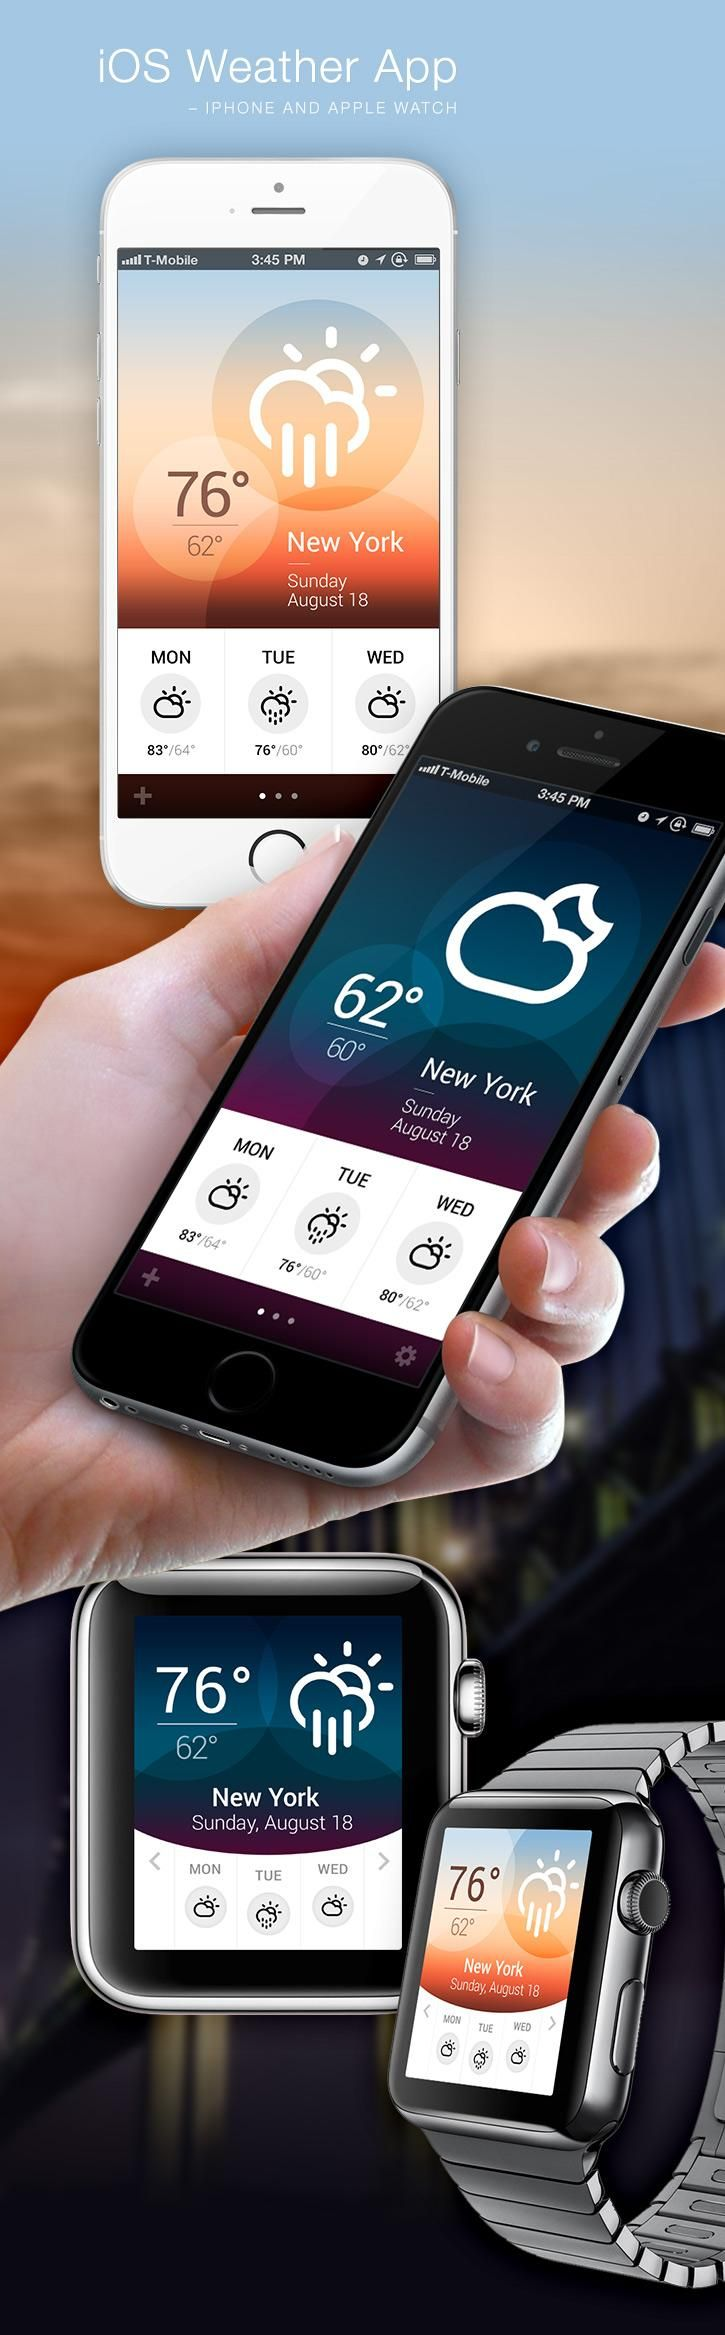 Design concept for an iOS Weather App (iPhone and Apple